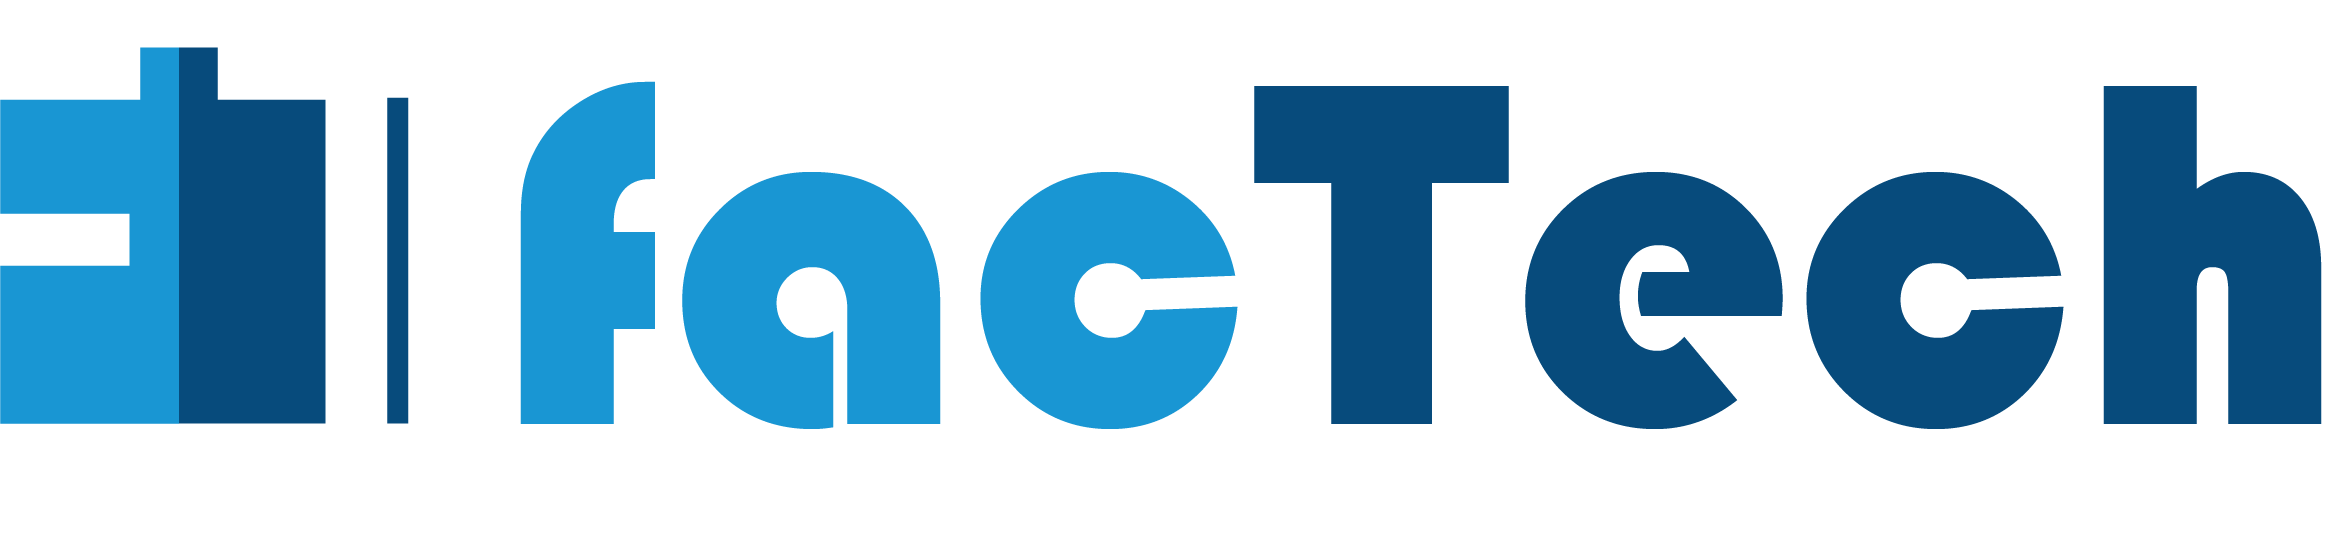 Factech Facility Management System logo